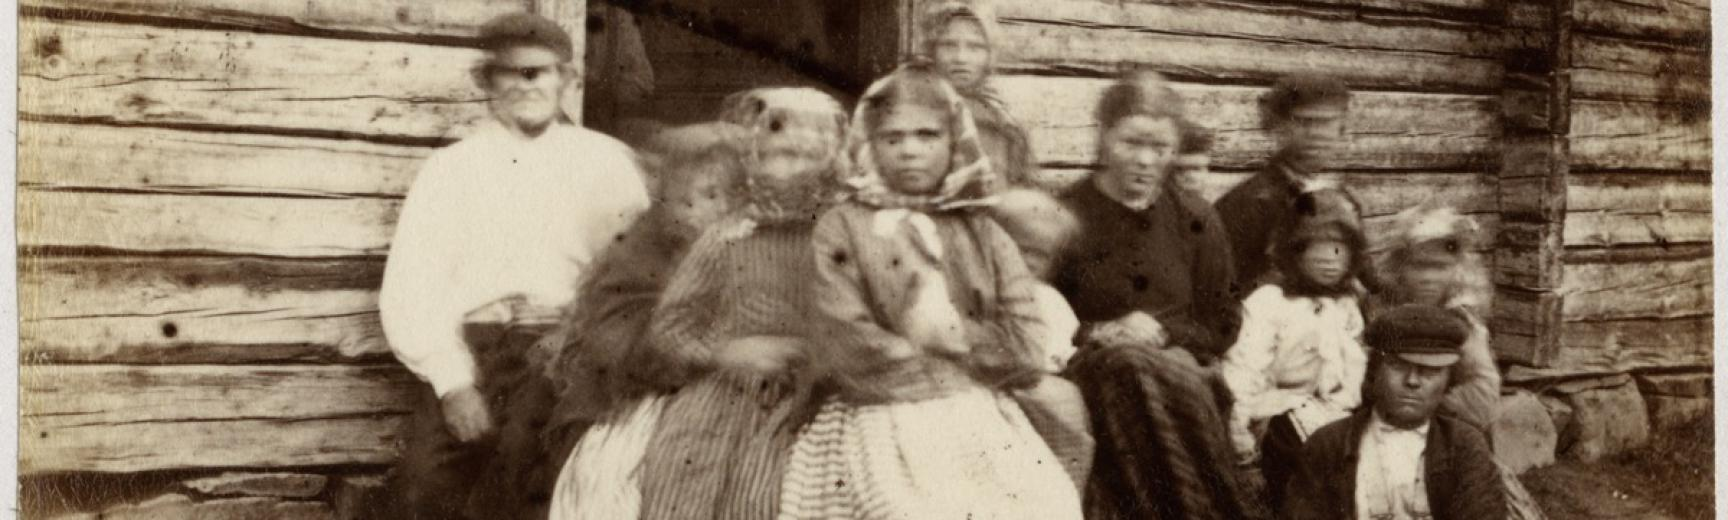 Portrait of a Finnish family. In his diary Evans described photographing such a group: 'At Rungam, where we once more crossed the river Kemi, I tried taking a photograph of a large group of Finns, & actually succeeded in getting them to sit, but when the